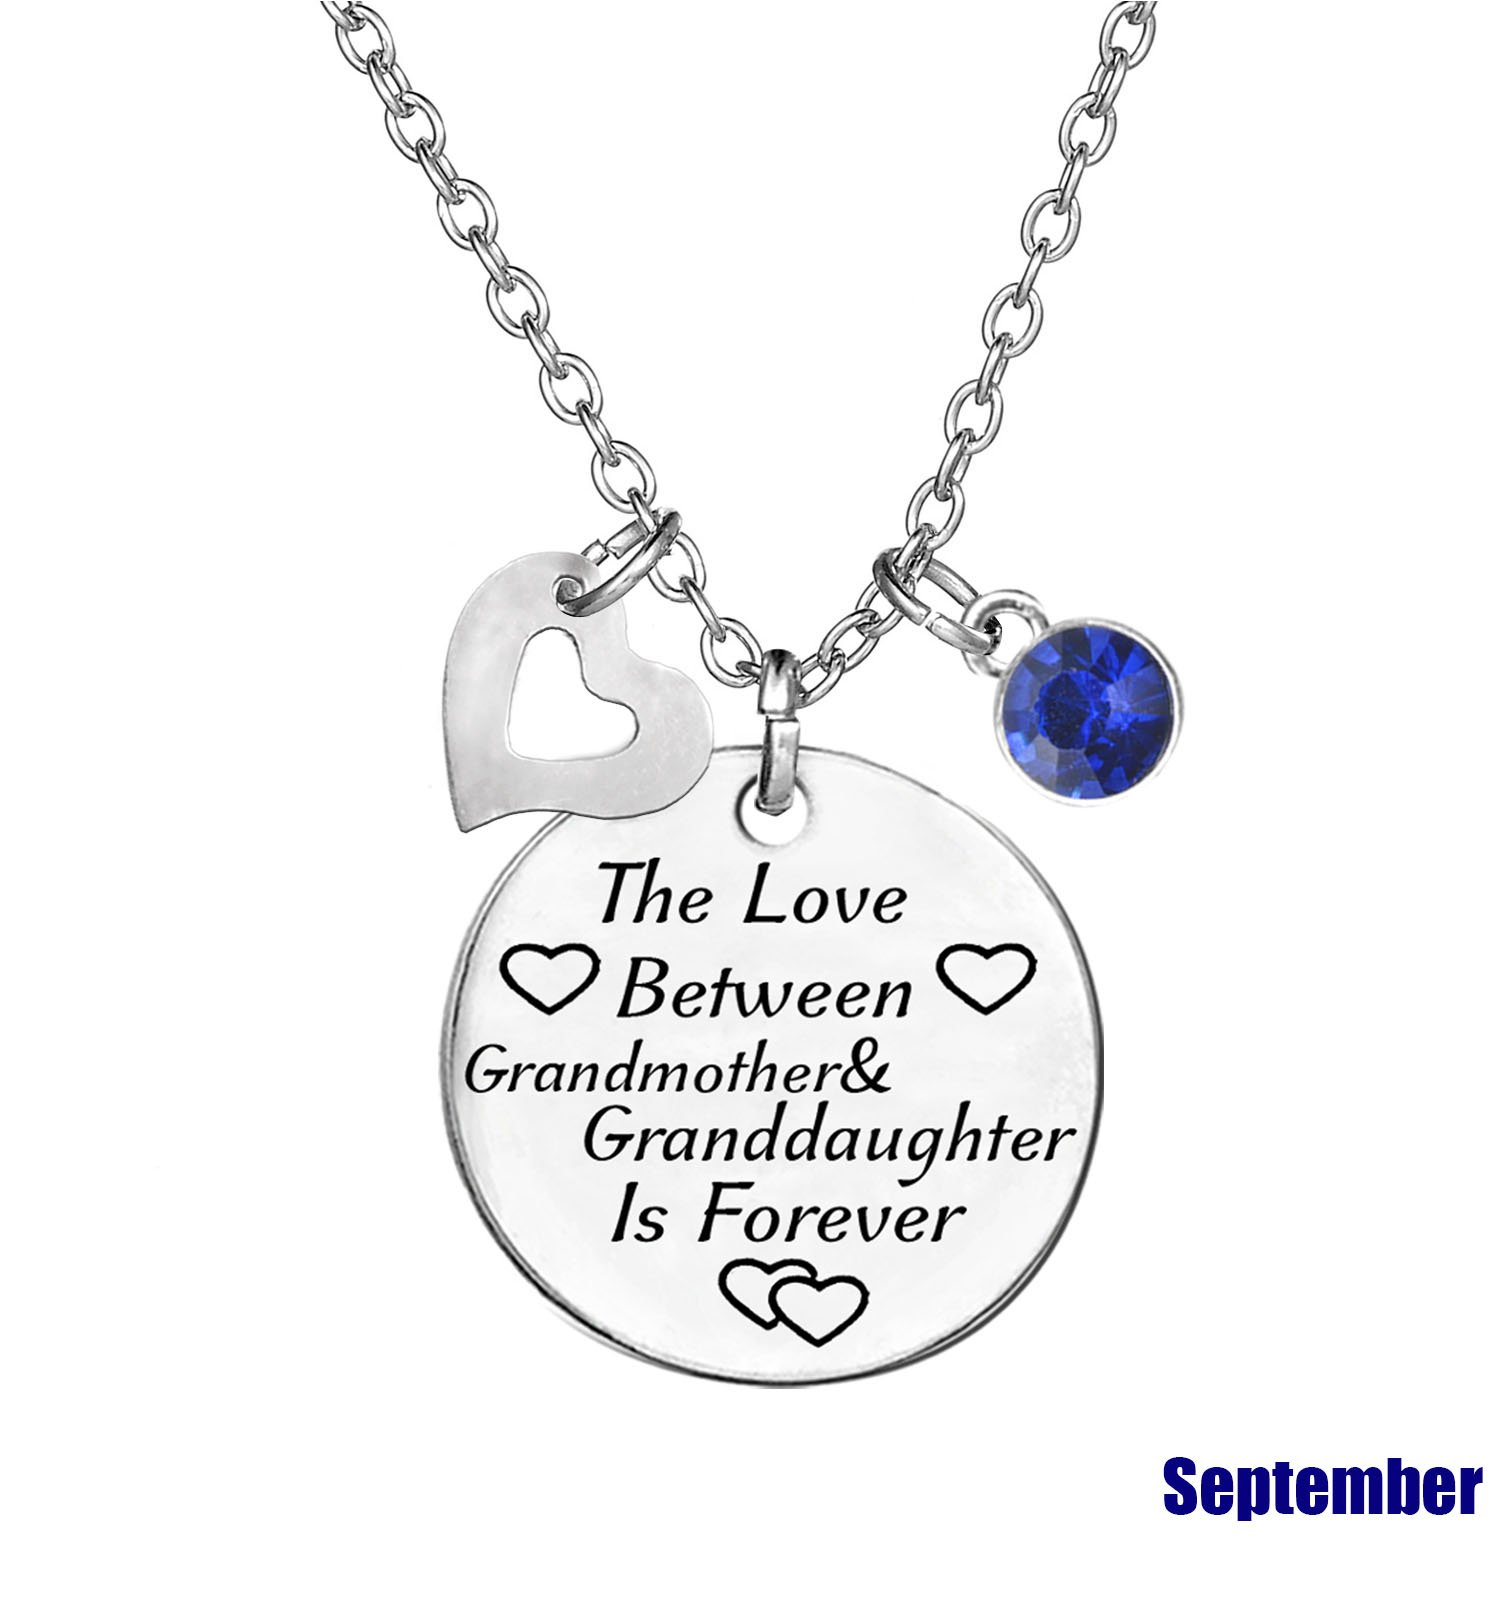 TISDA Birthstone Crystals Necklace,The Love between Grandmother and Granddaughter is Forever Necklace Family Jewelry Christmas Gift (September) by TISDA (Image #2)